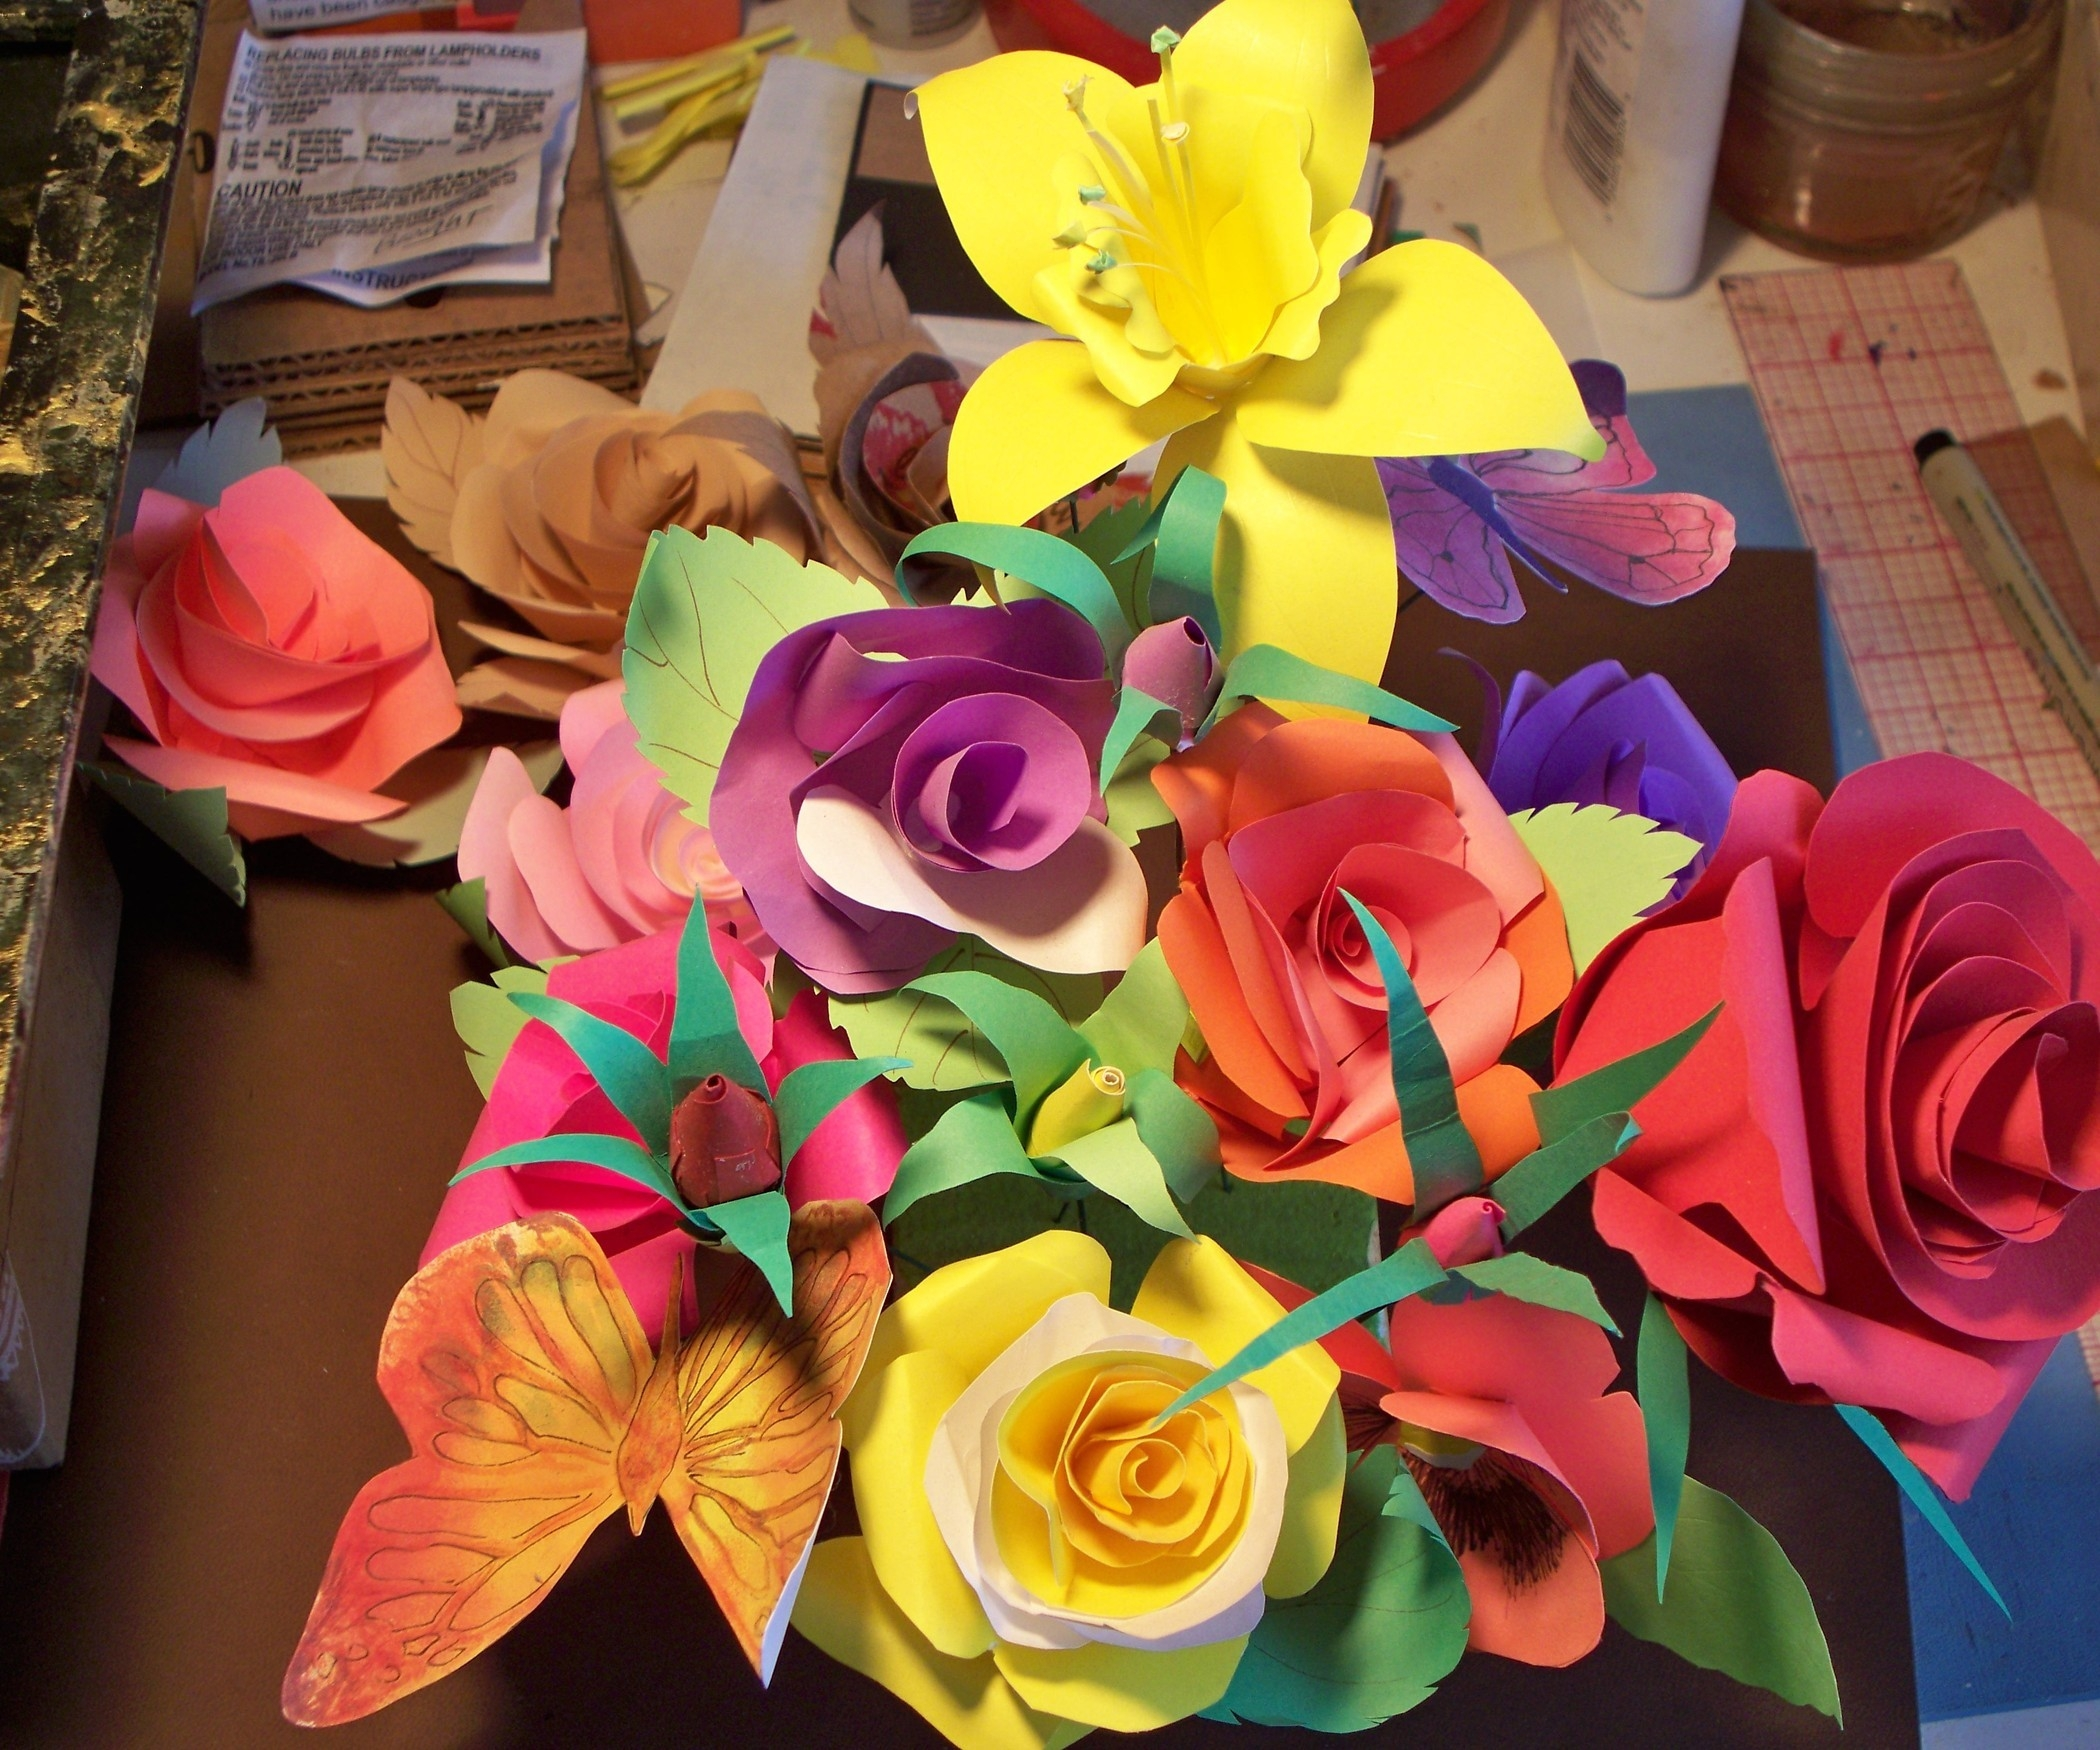 How To Make Paper Roses: 9 Steps (With Pictures) intended for How To Make Paper Roses With Construction Paper Step By Step 27563